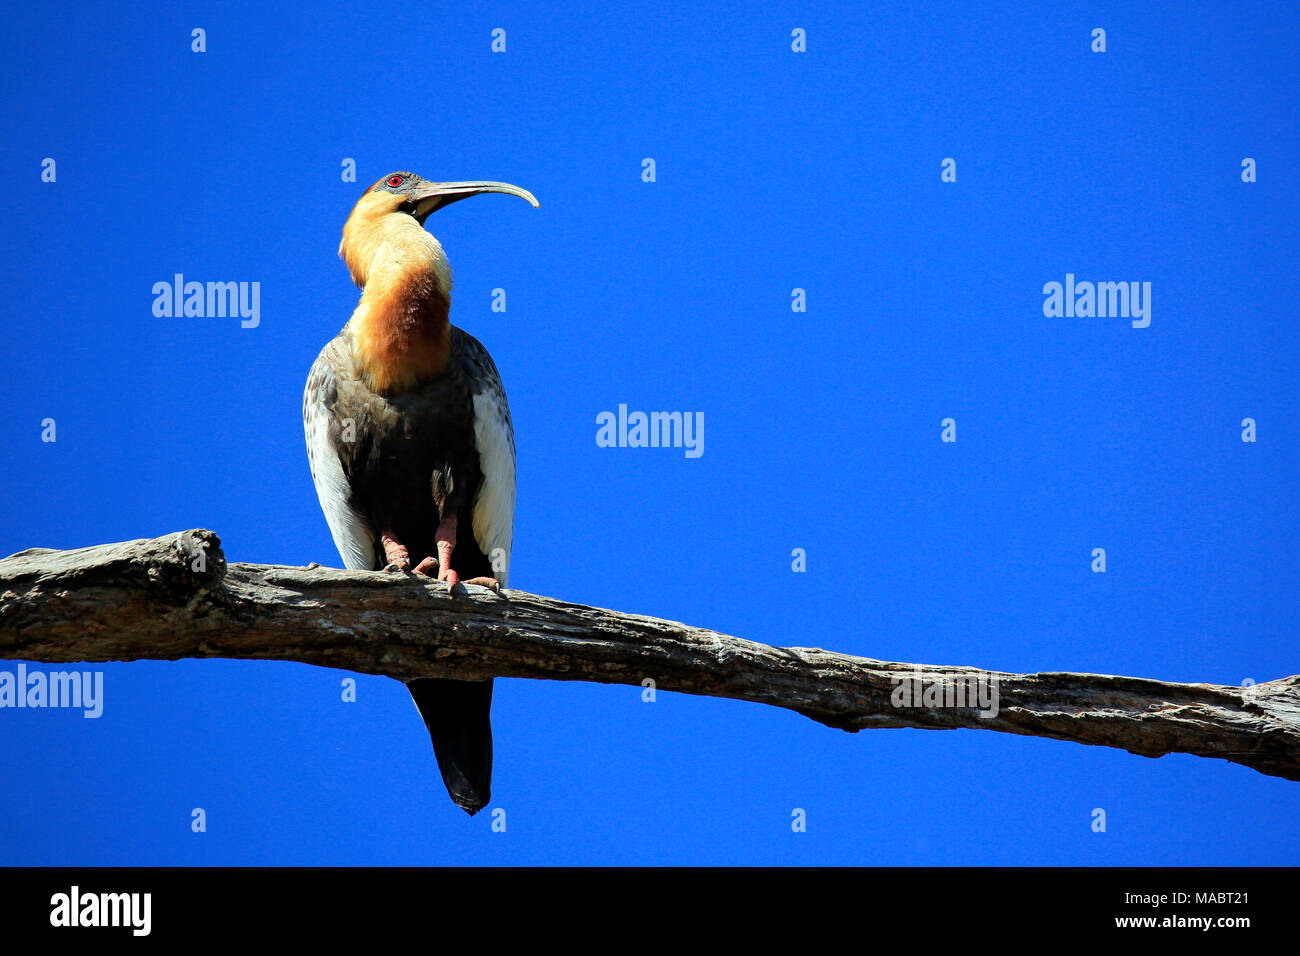 Buff-necked Ibis (Theristicus caudatus, aka White-throated Ibis, Curicaca) on a Branch against Clear Blue Sky. Pantanal, Brazil - Stock Image